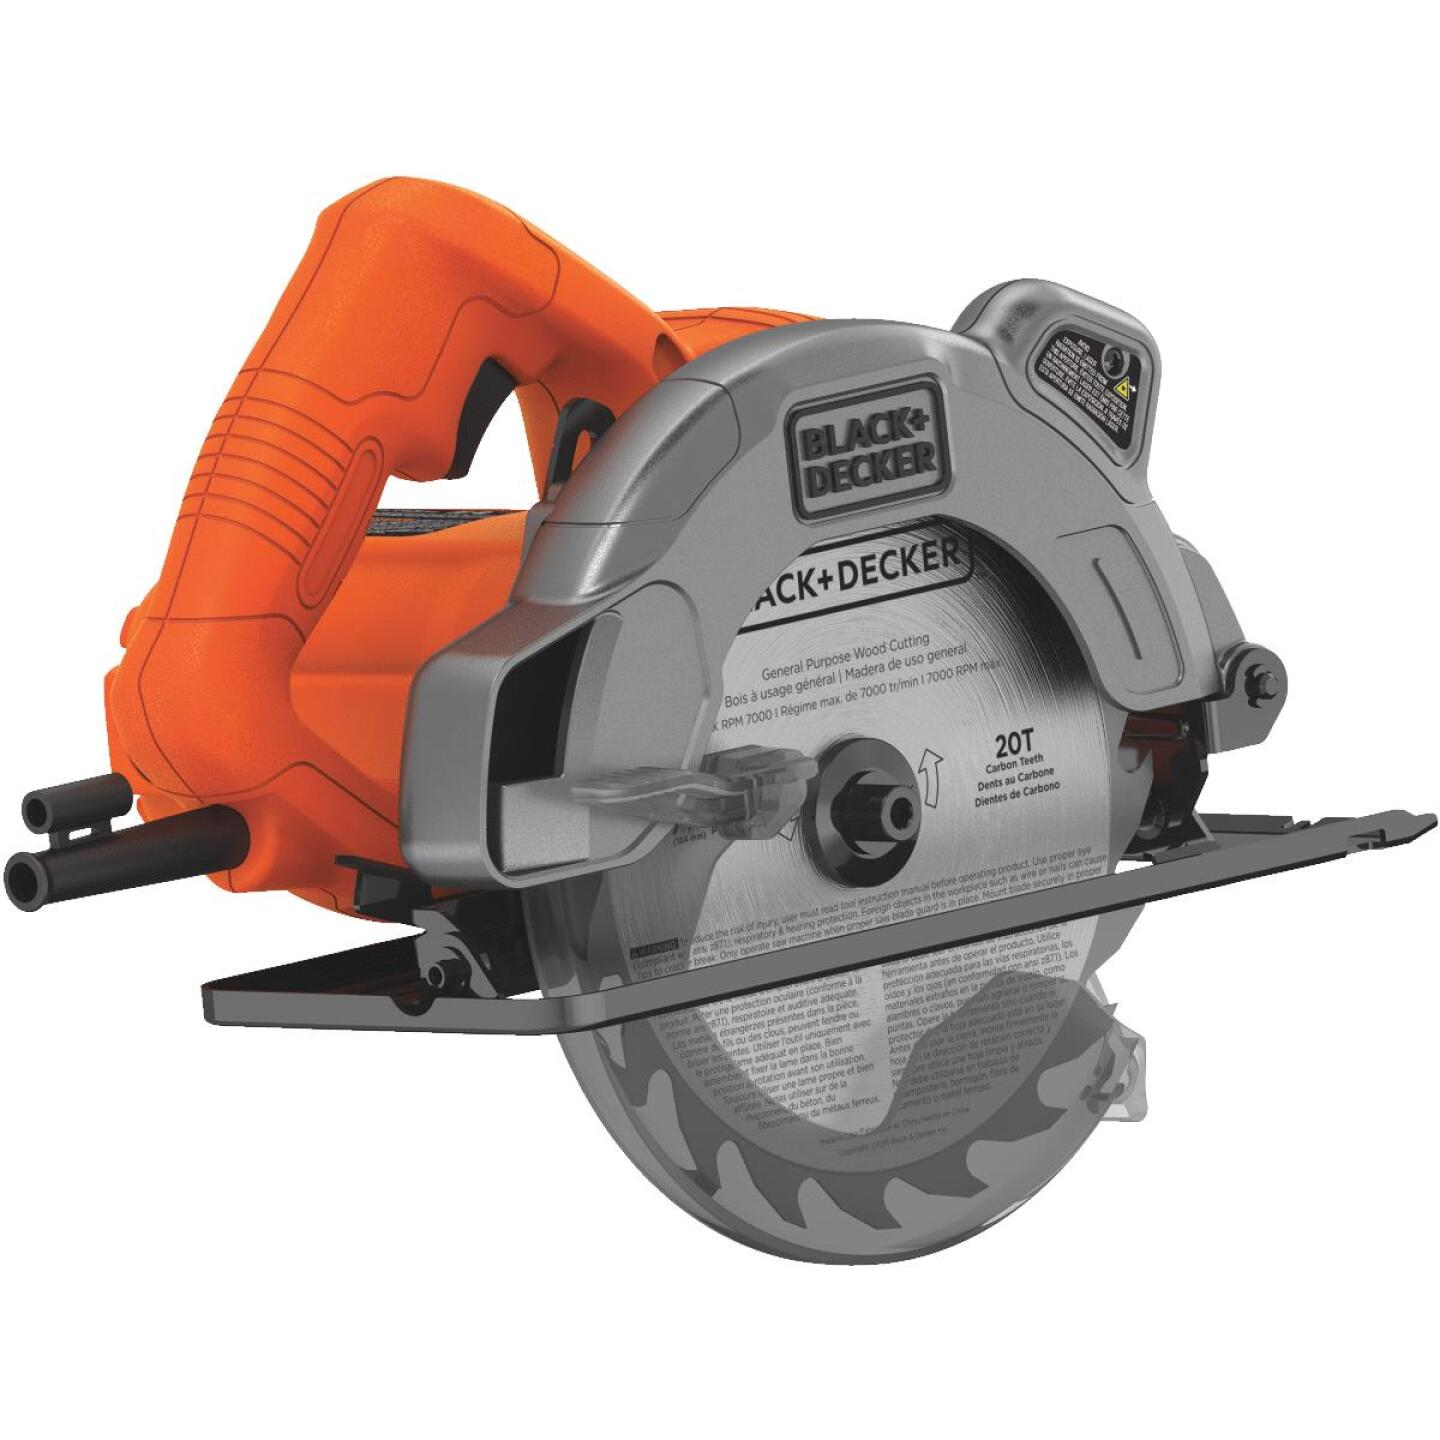 Black & Decker 7-1/4 In. 13-Amp Circular Saw with Laser Image 7